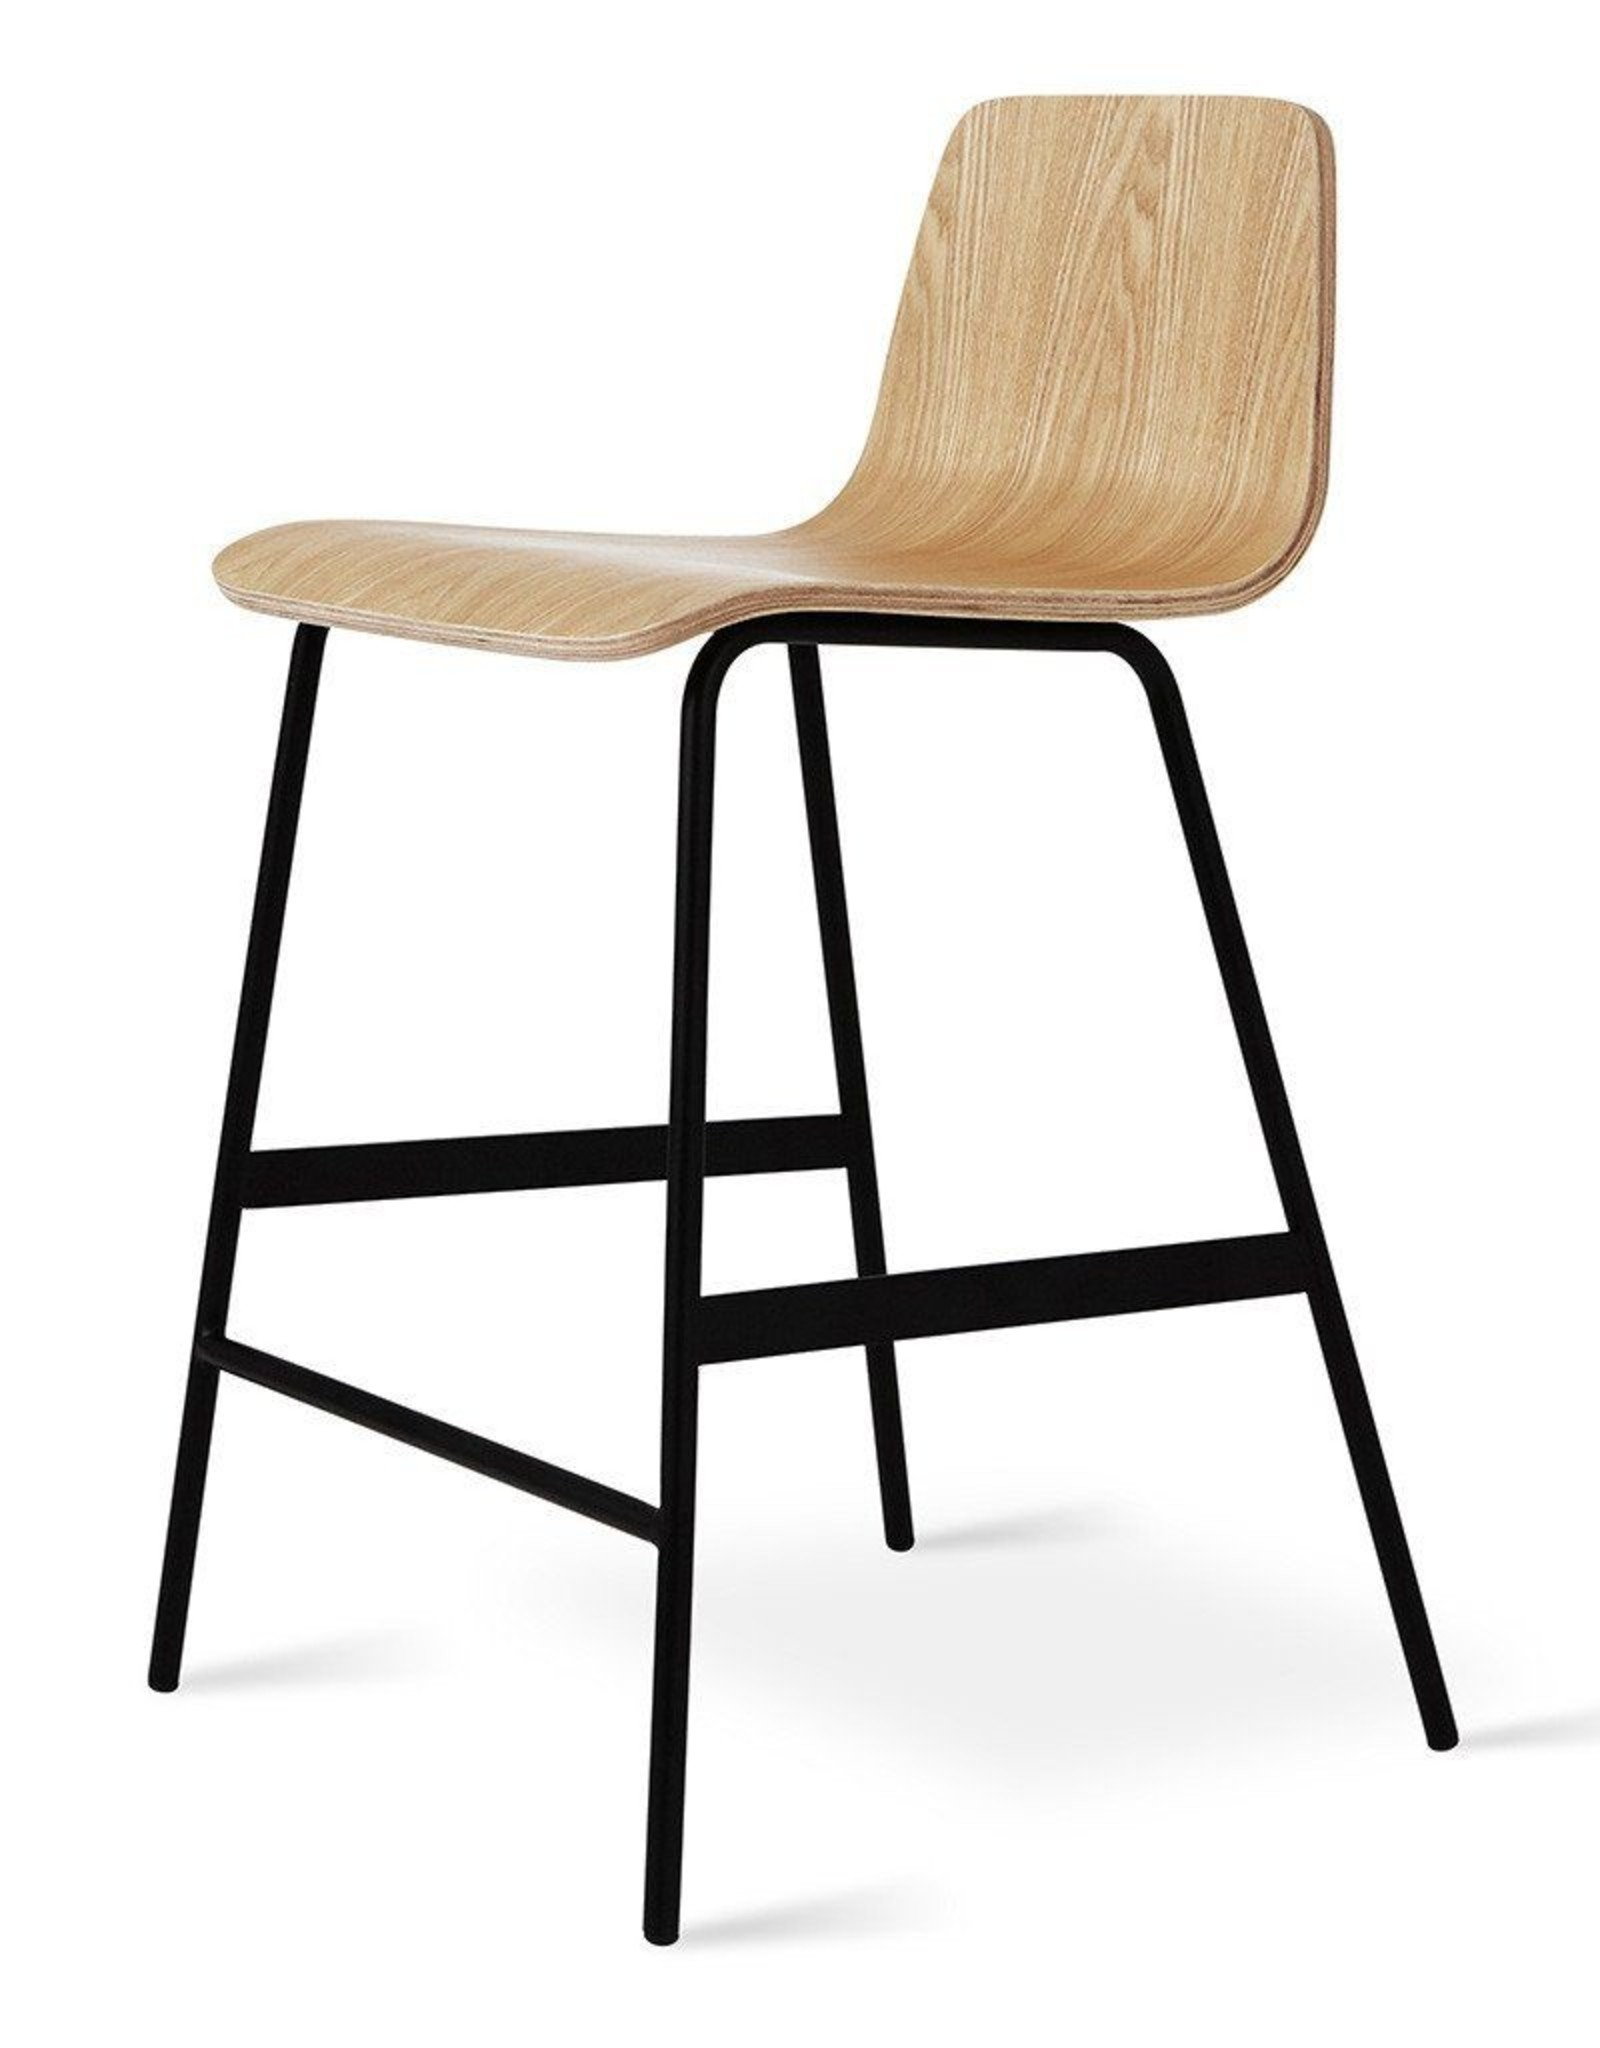 Gus* Modern Lecture Counter Stool